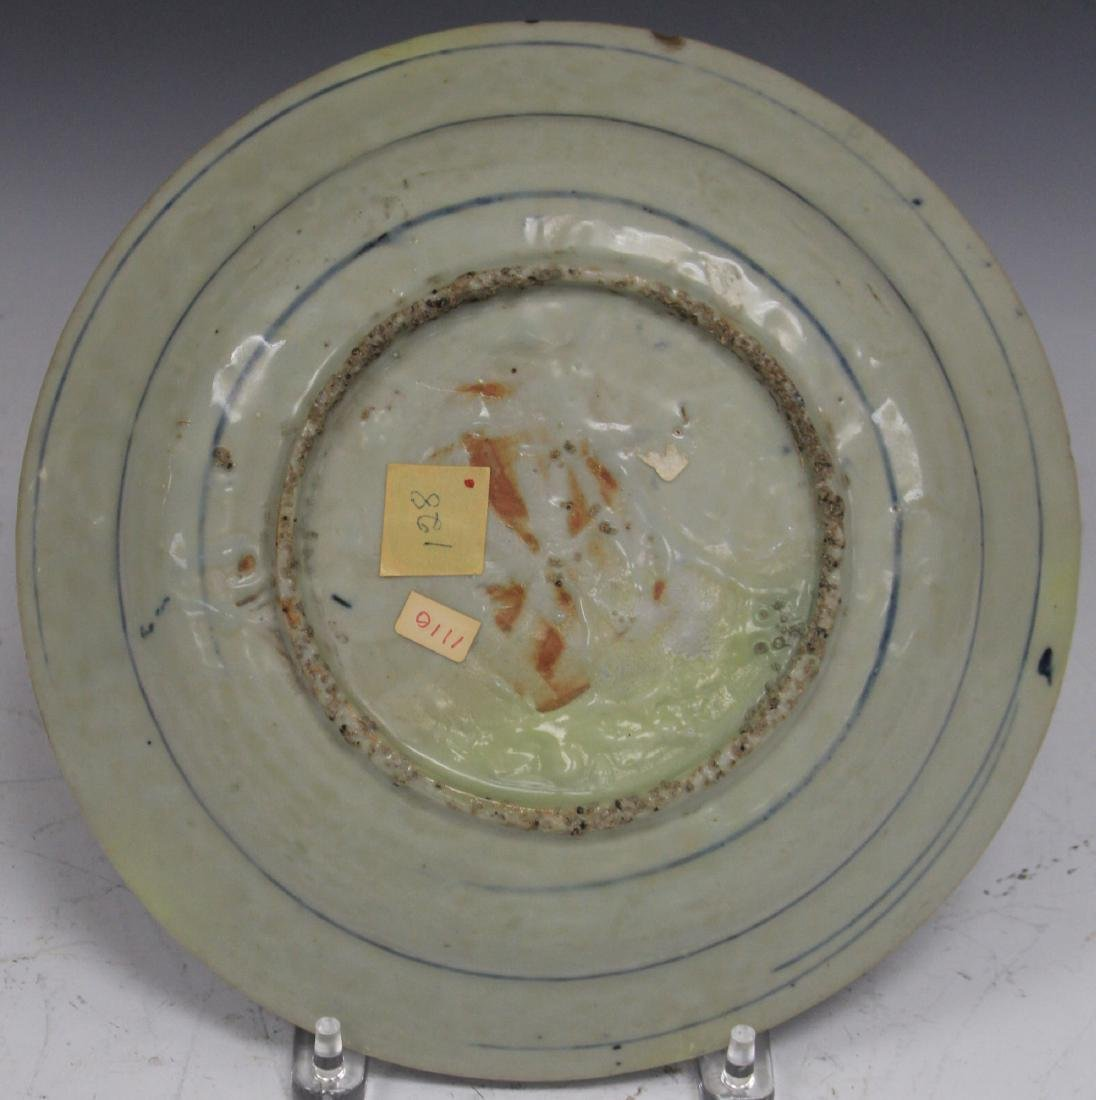 16TH/17TH C. SWATOW BLUE & WHITE PLATE - 3